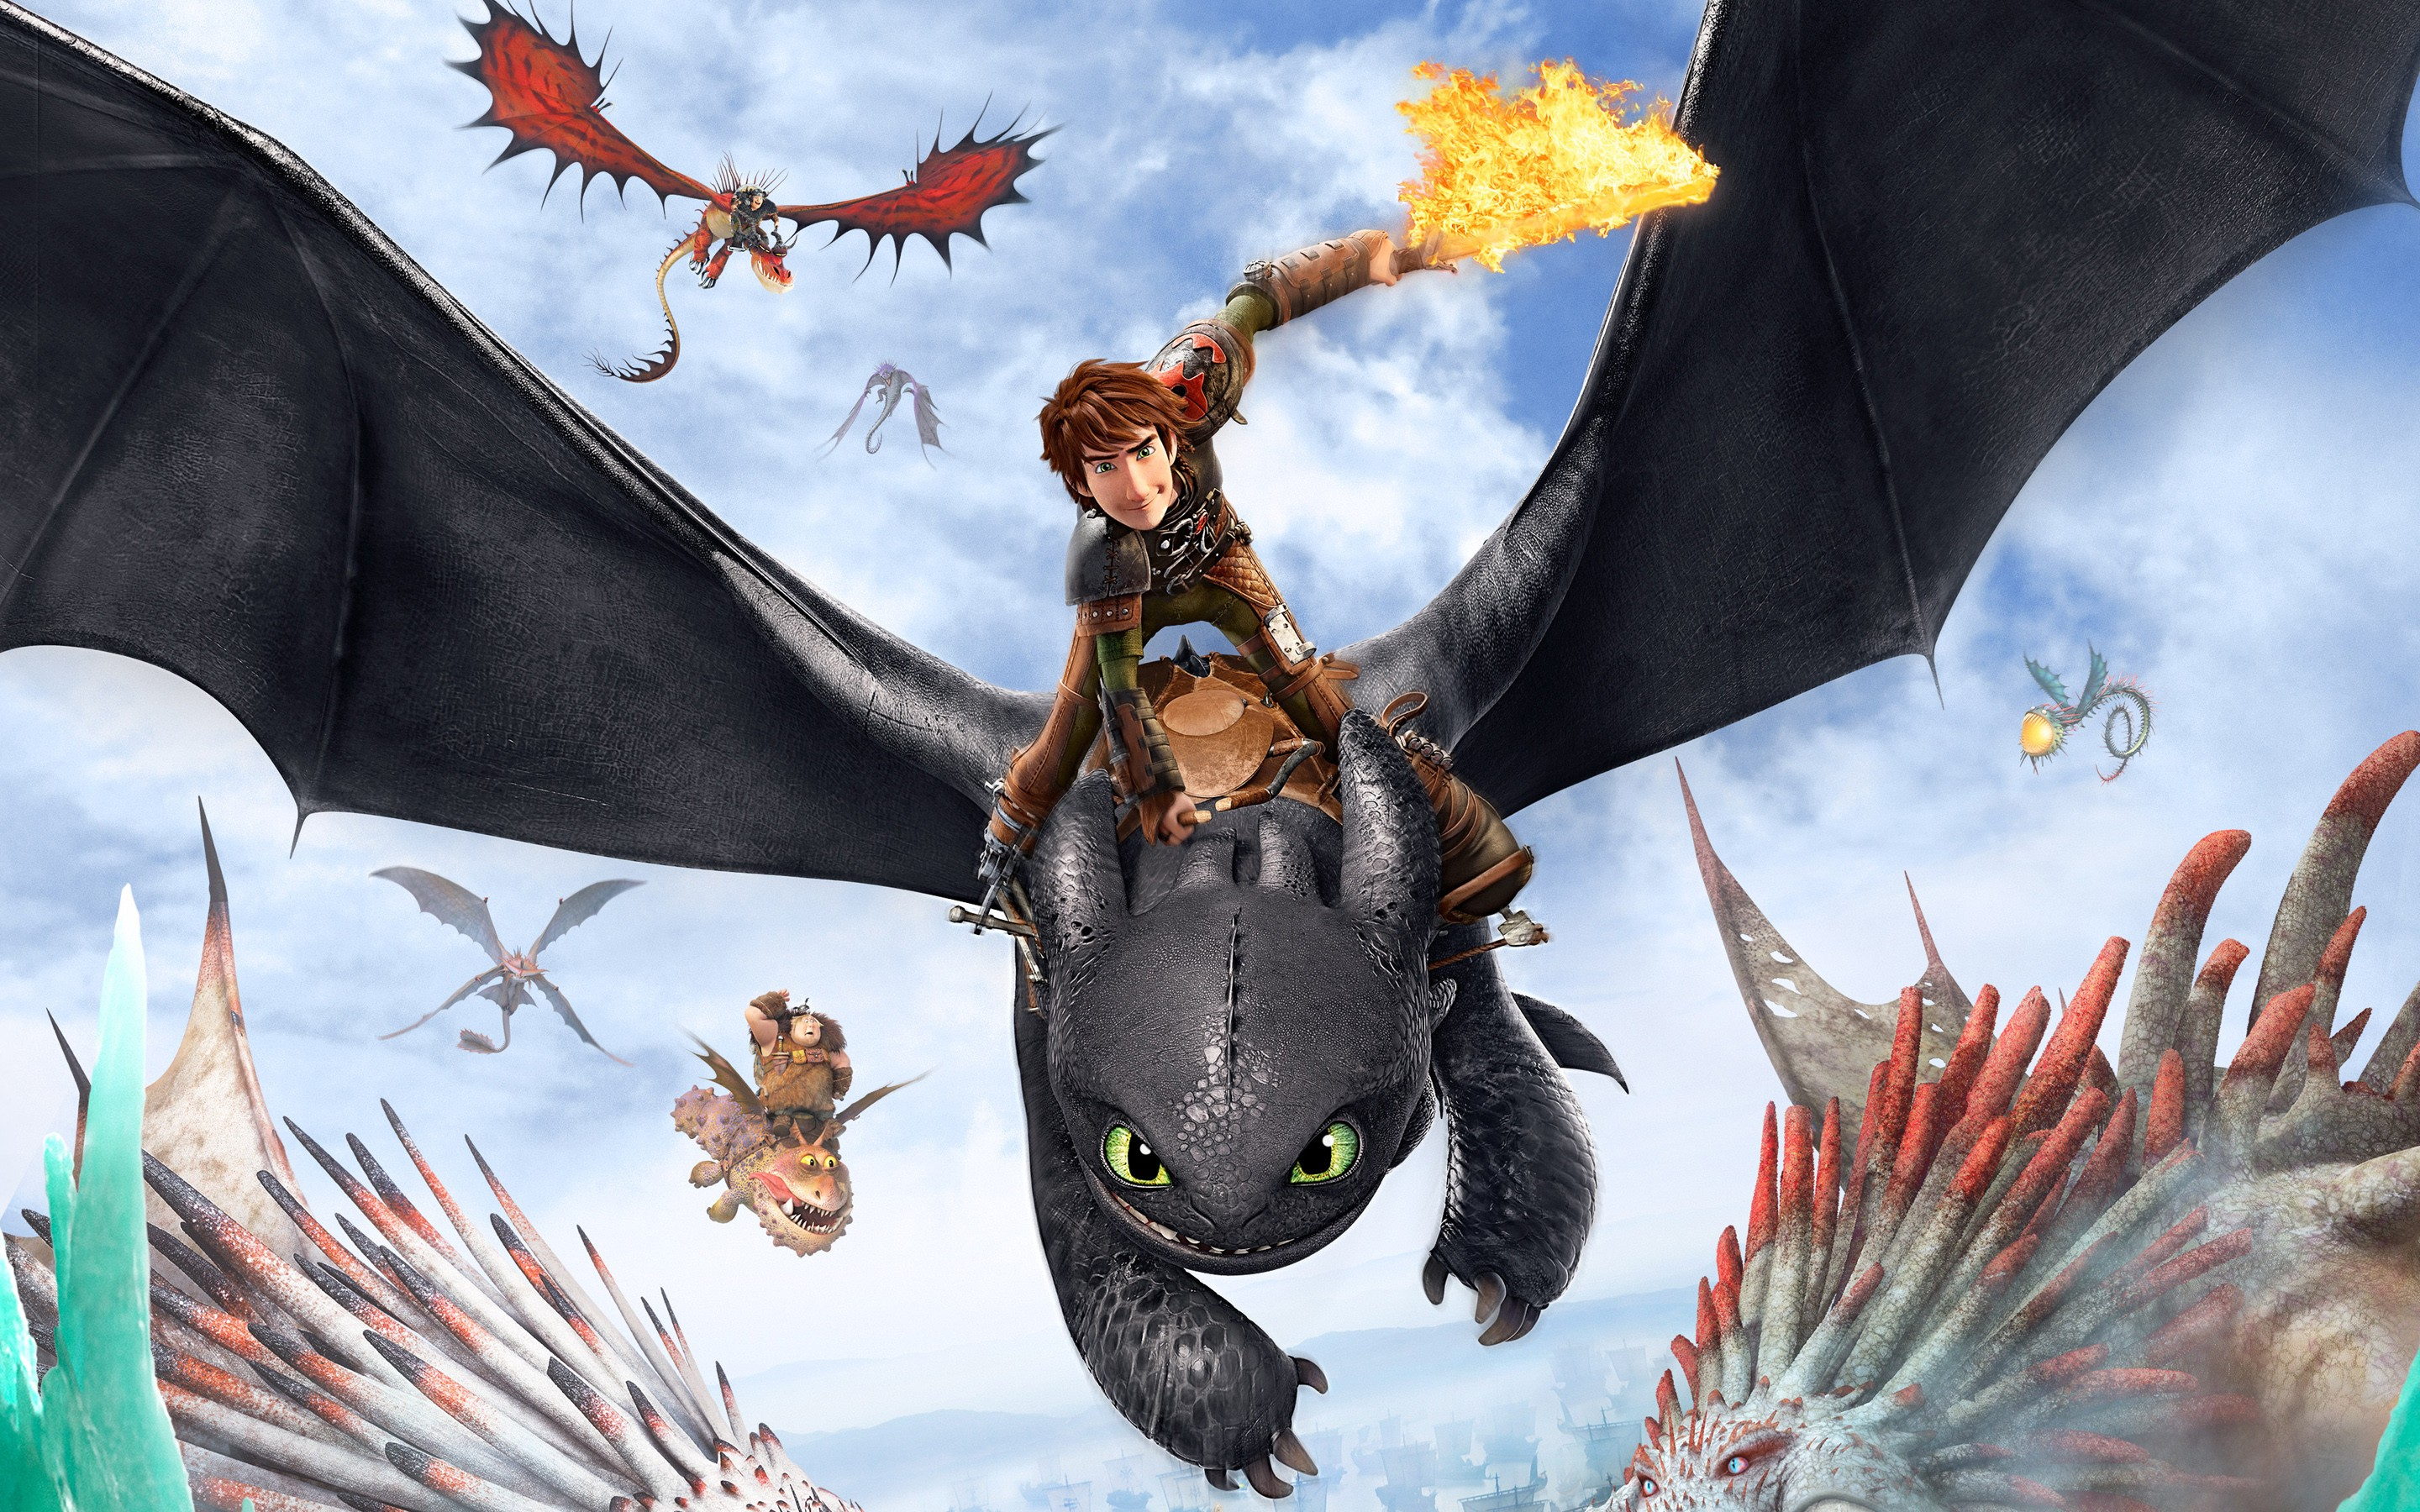 How To Train Your Dragon 2 Hd Movies 4k Wallpapers Images Backgrounds Photos And Pictures